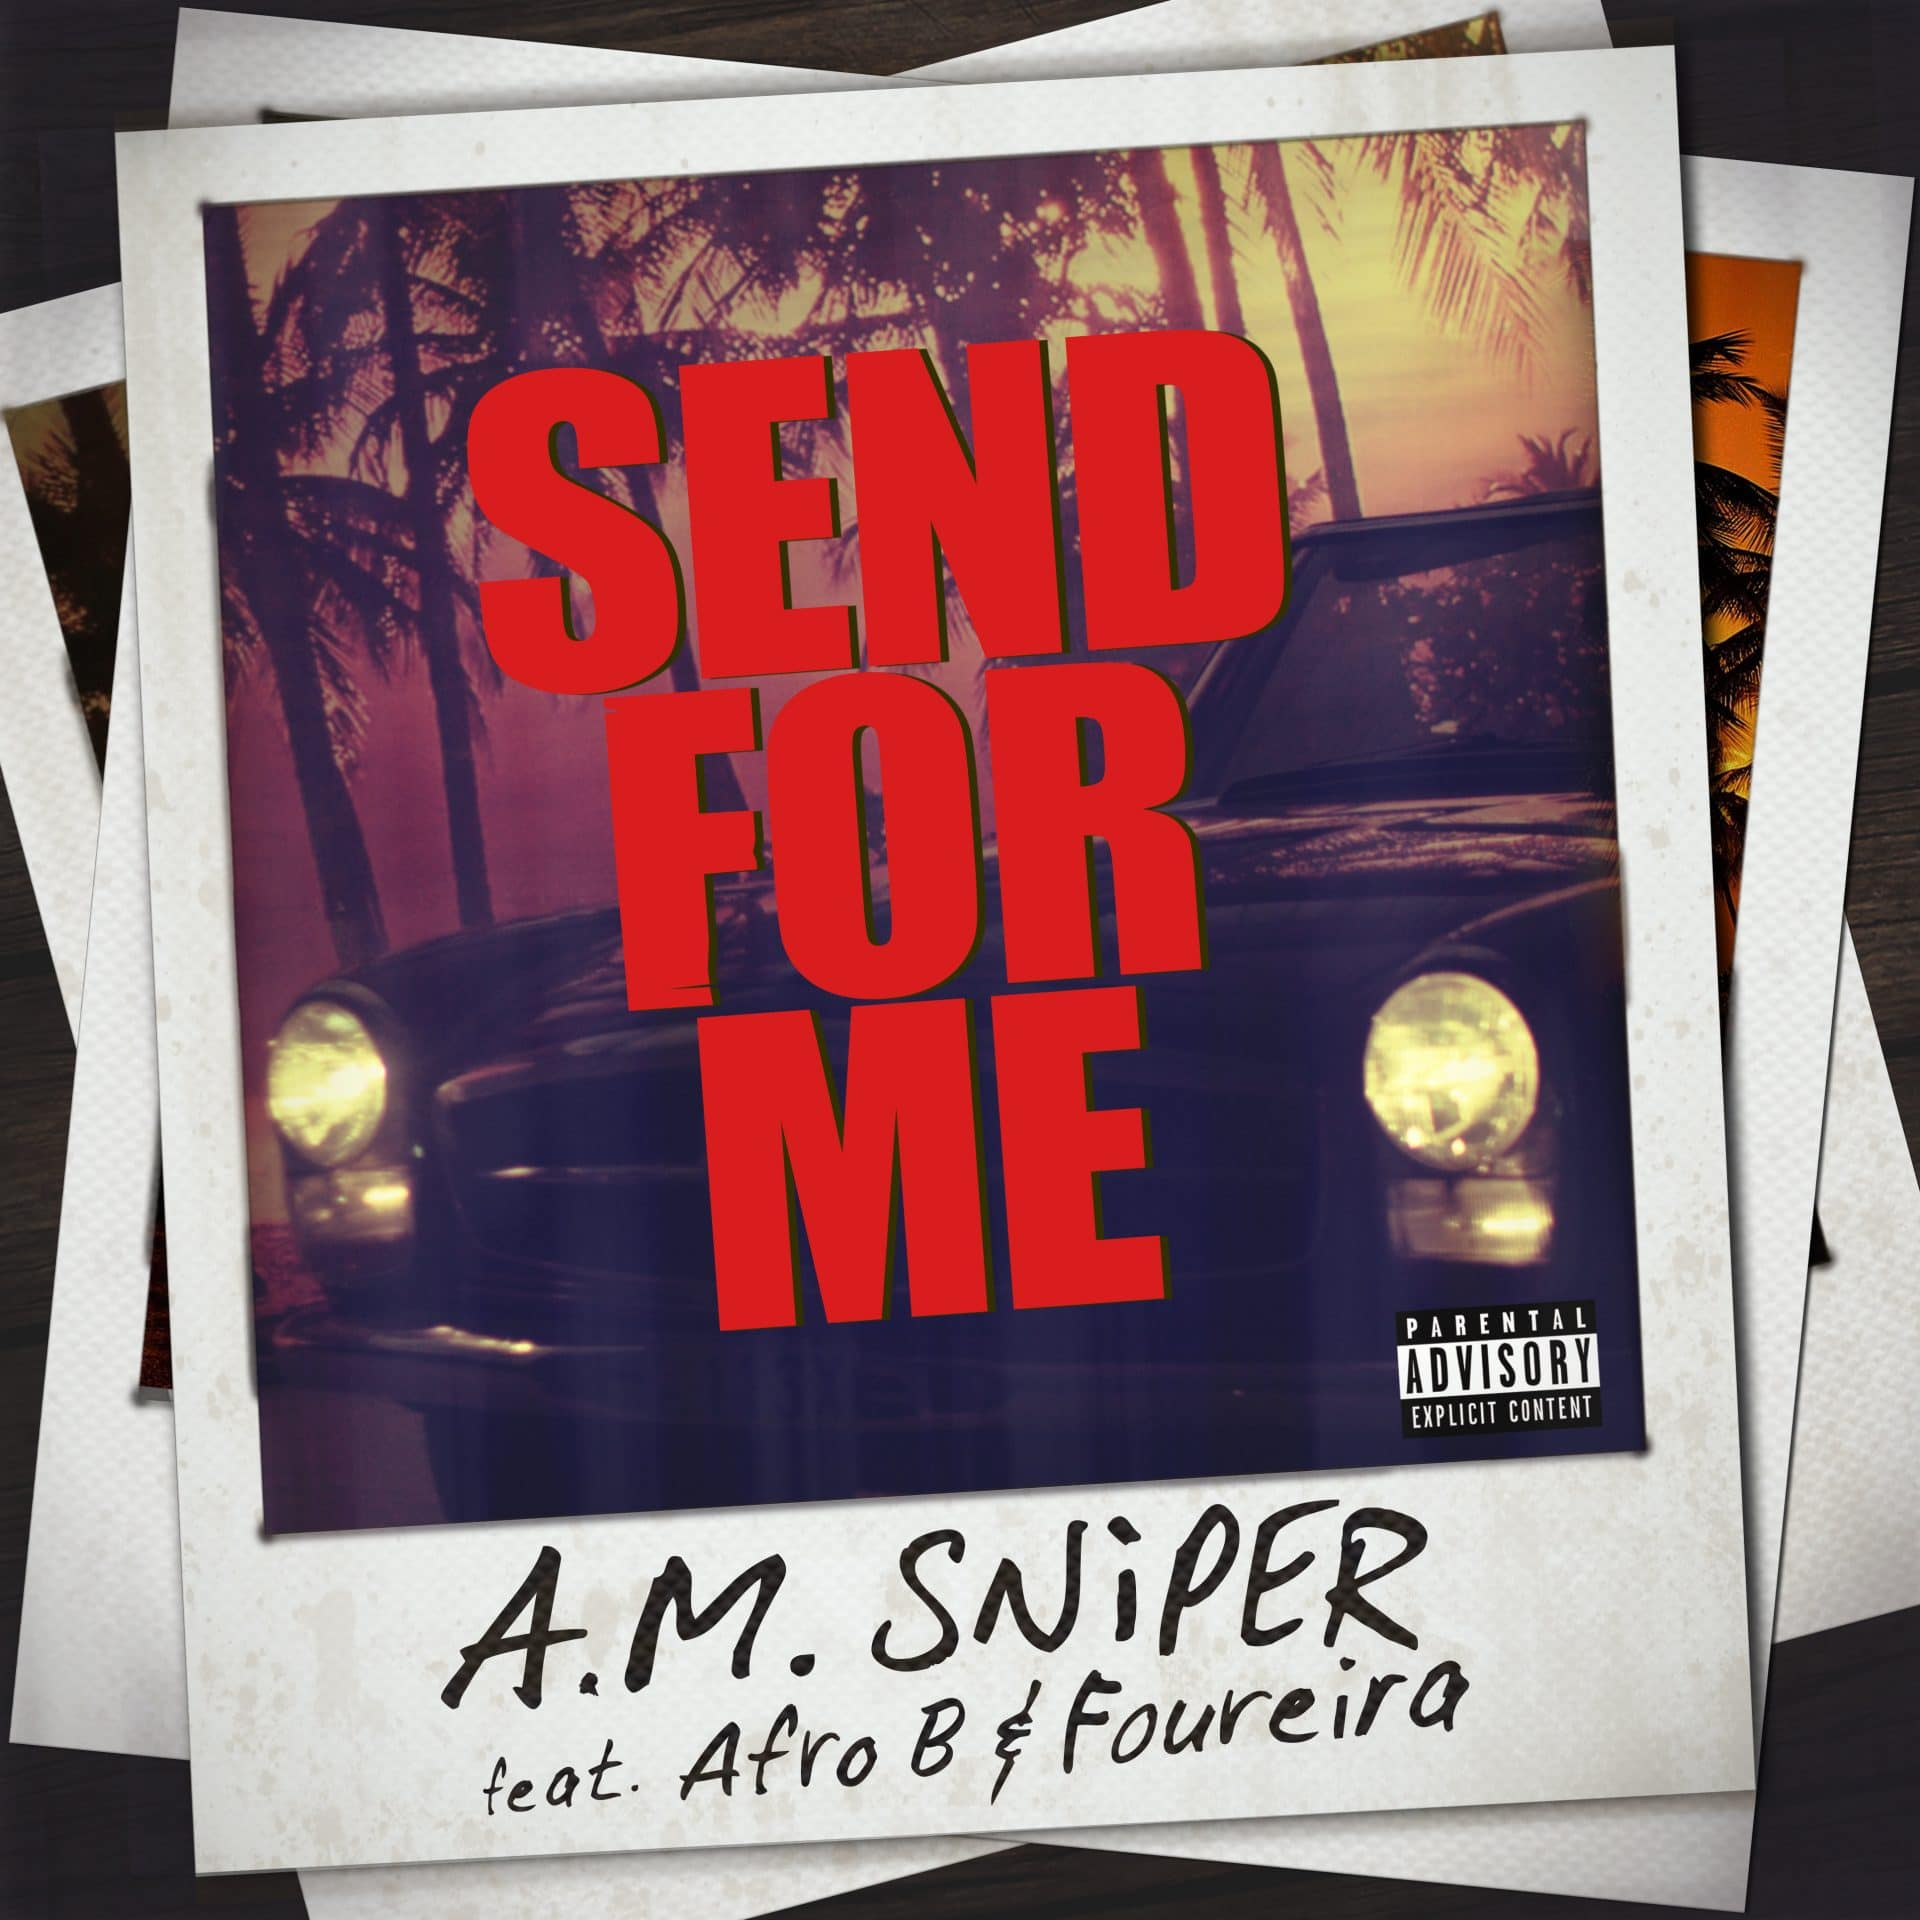 LISTeN | A.M. SNiPER - Sent For Me (Feat. Afro B & Foureira)